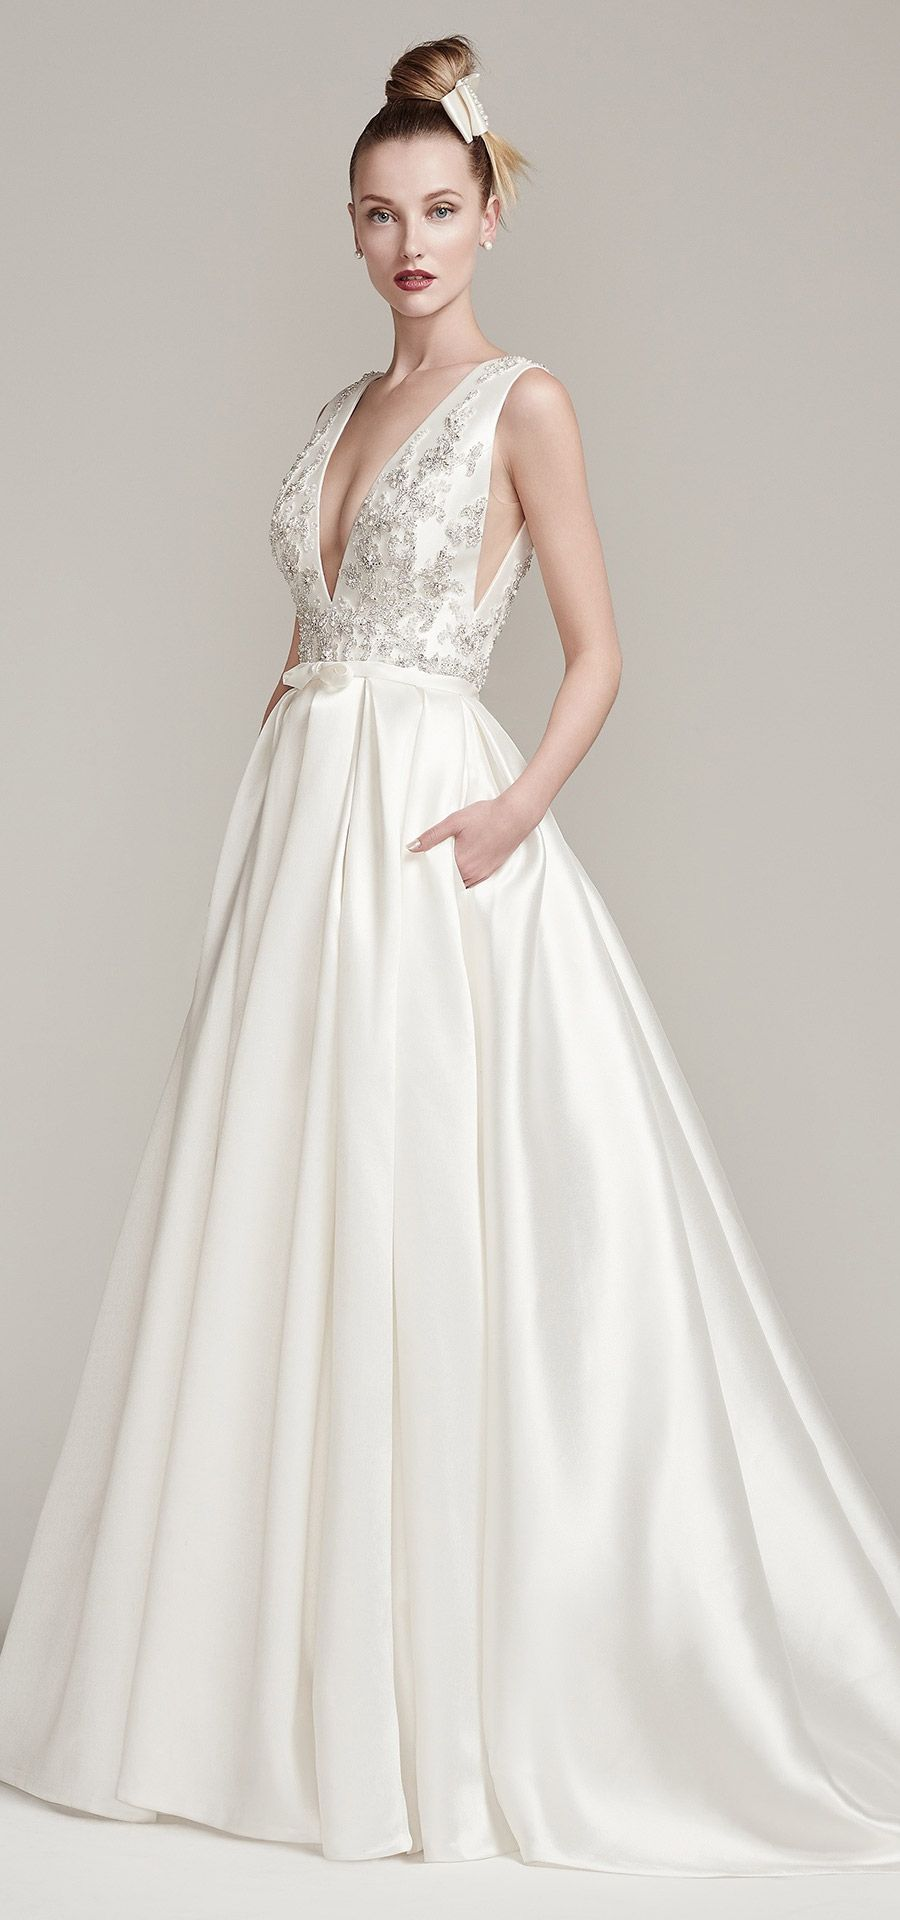 MARGOT by Sottero and Midgley Wedding Dresses Ball gown